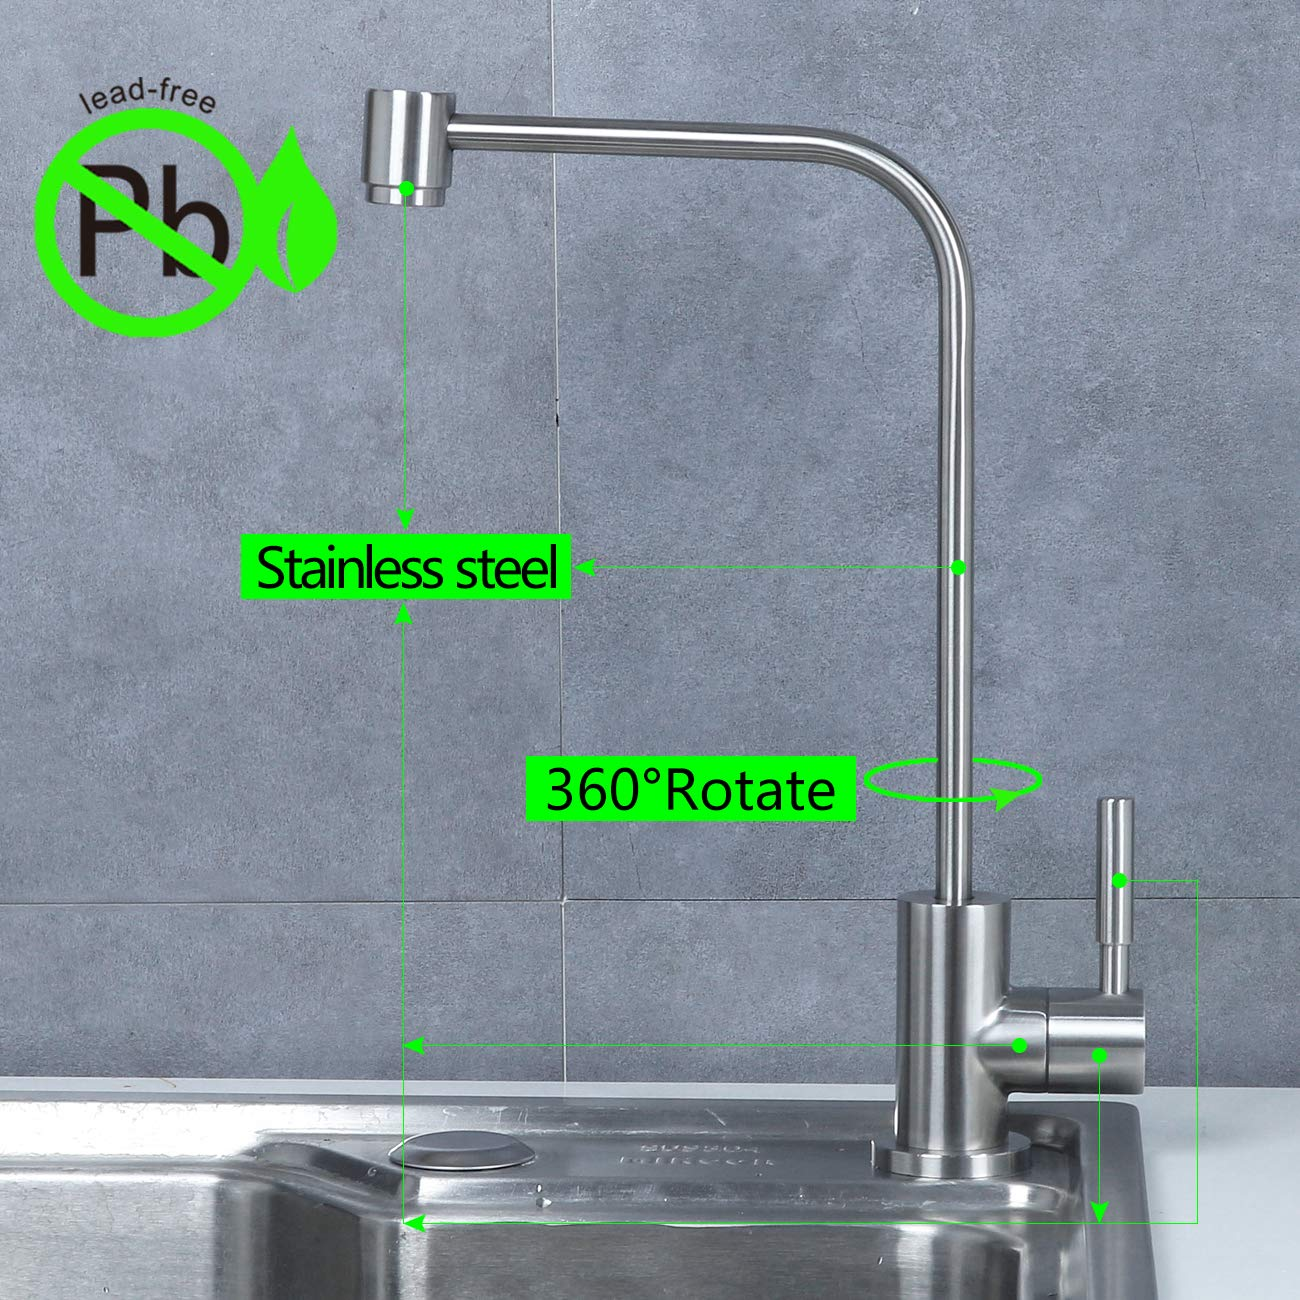 Stainless Steel Kitchen bar Sink Drinking Water filter Faucet, Fits all reverse osmosis water filtration system, Lead-Free, Brushed, Single Handle by MINGOR (Image #3)